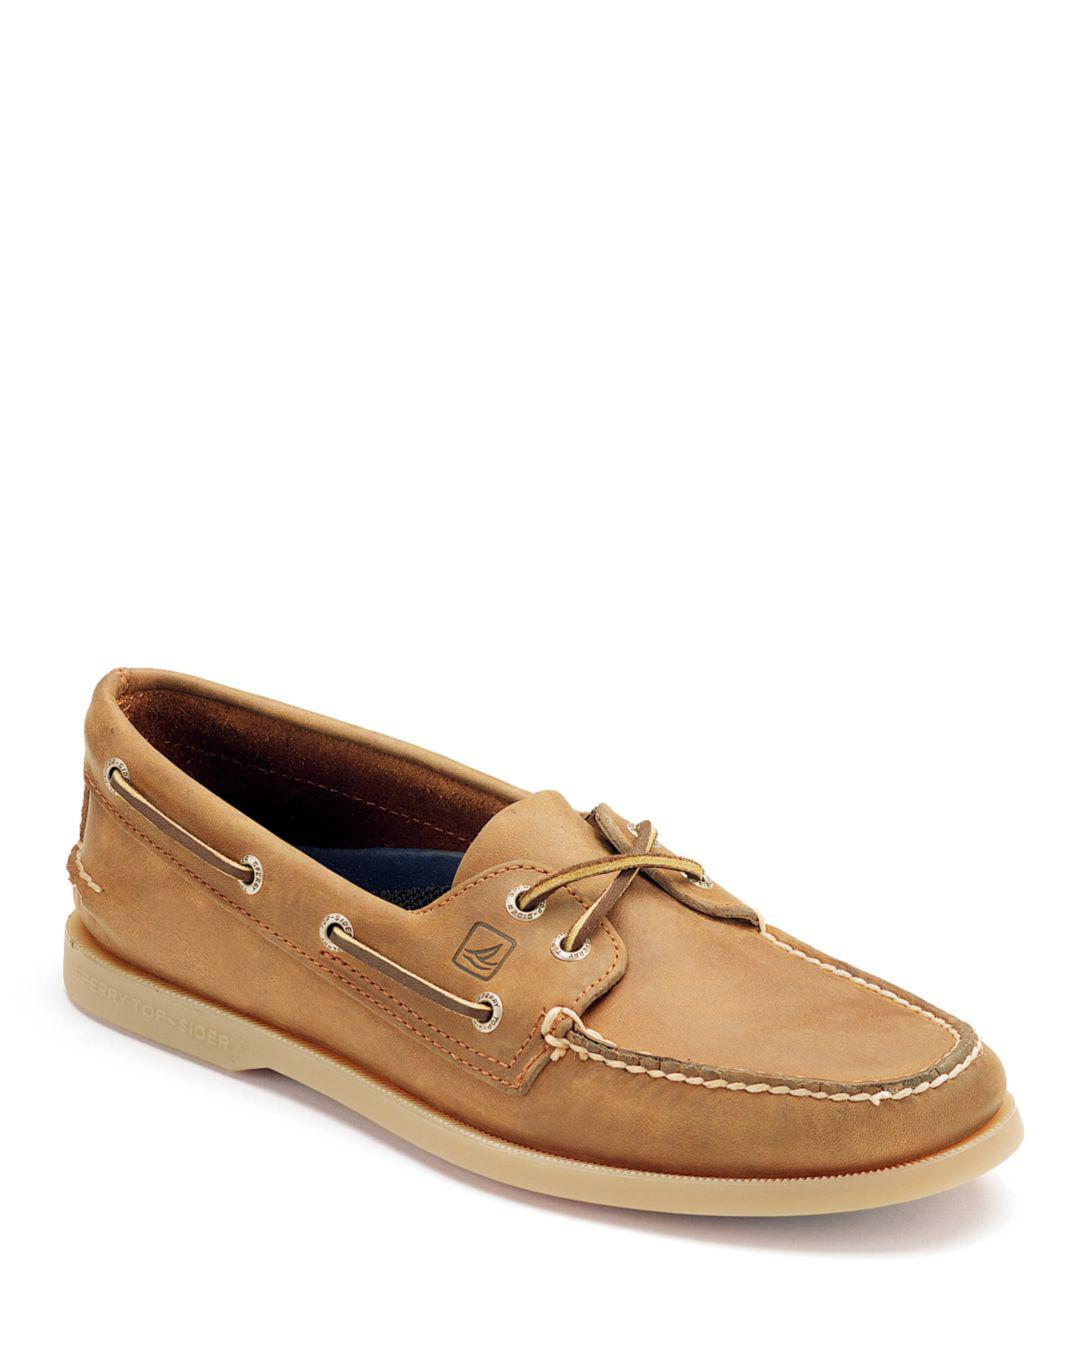 Men S Authentic Original Two Eye Leather Boat Shoes